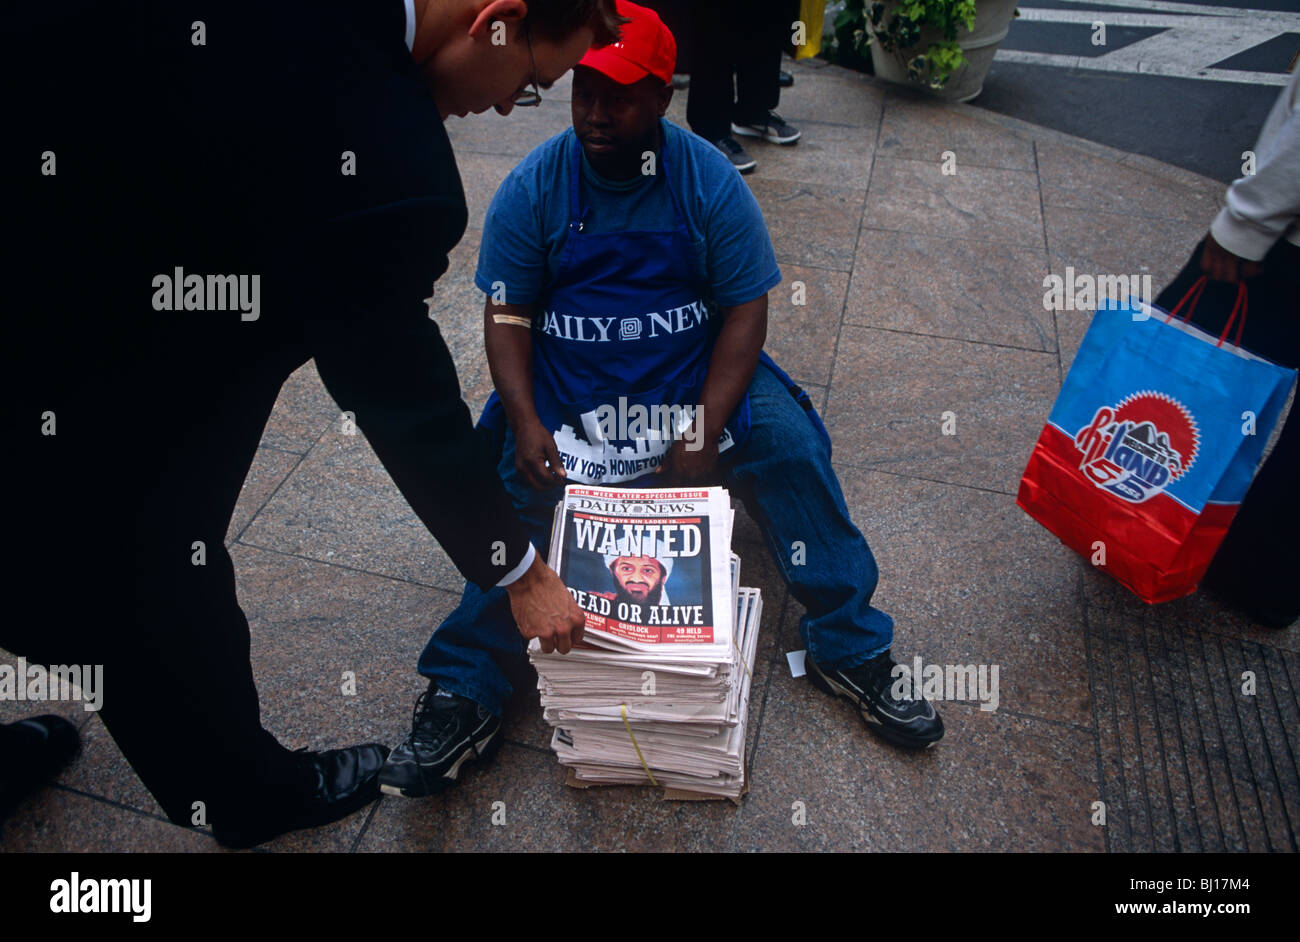 New Yorker bends down to buy latest copy of the New York Daily News with Osama Bin Laden 'Wanted Dead or Alive' - Stock Image